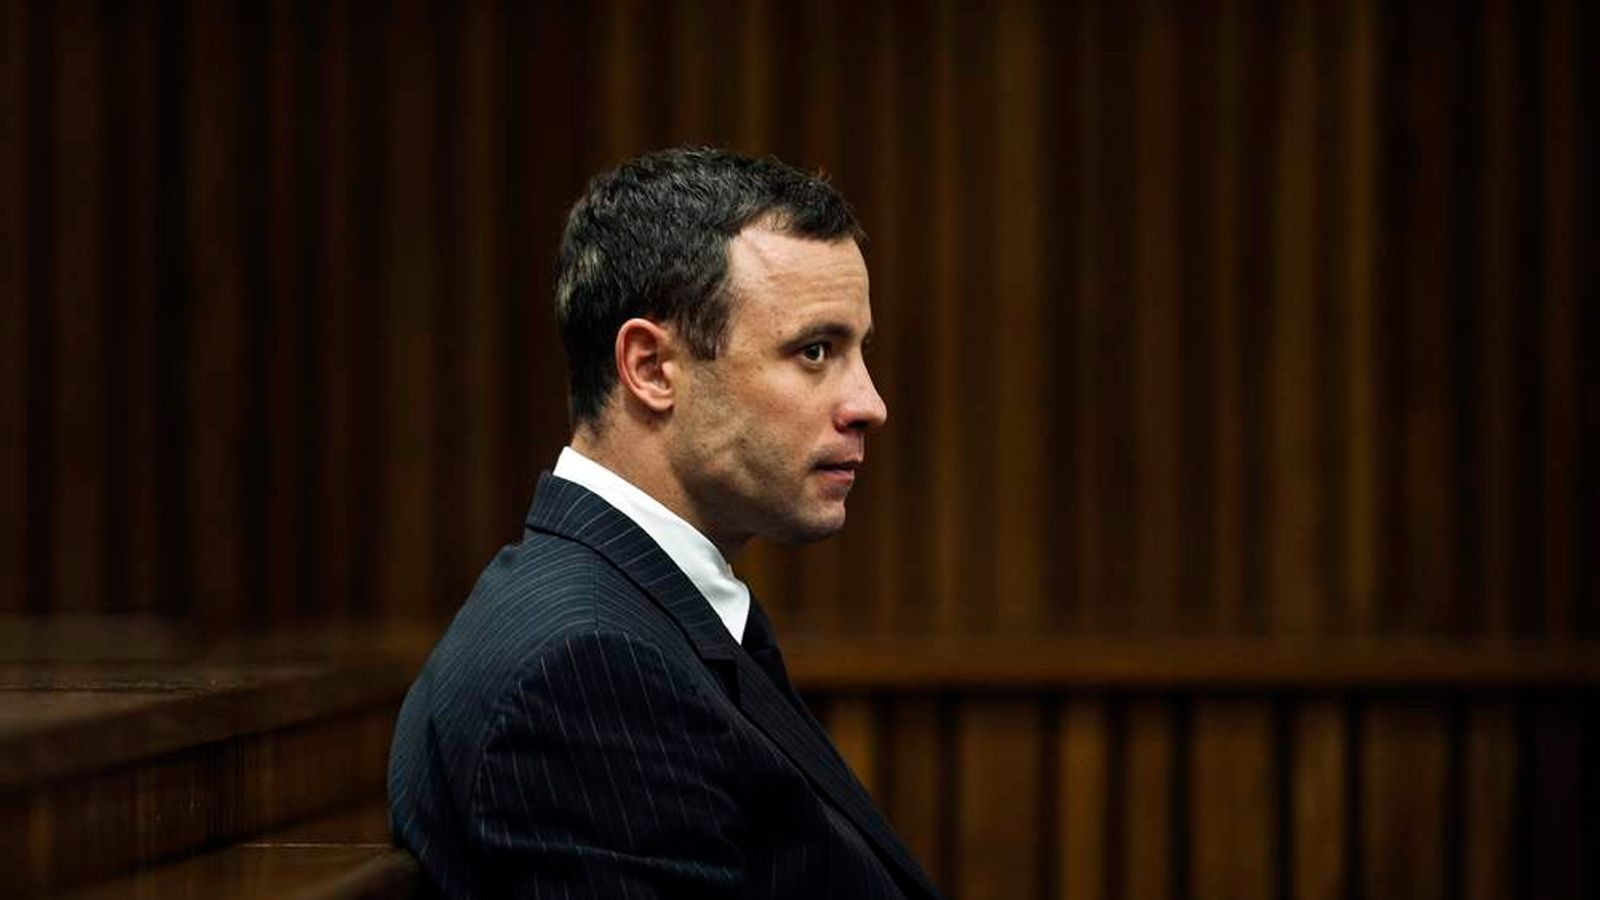 Oscar Pistorius sits in court during his trial.